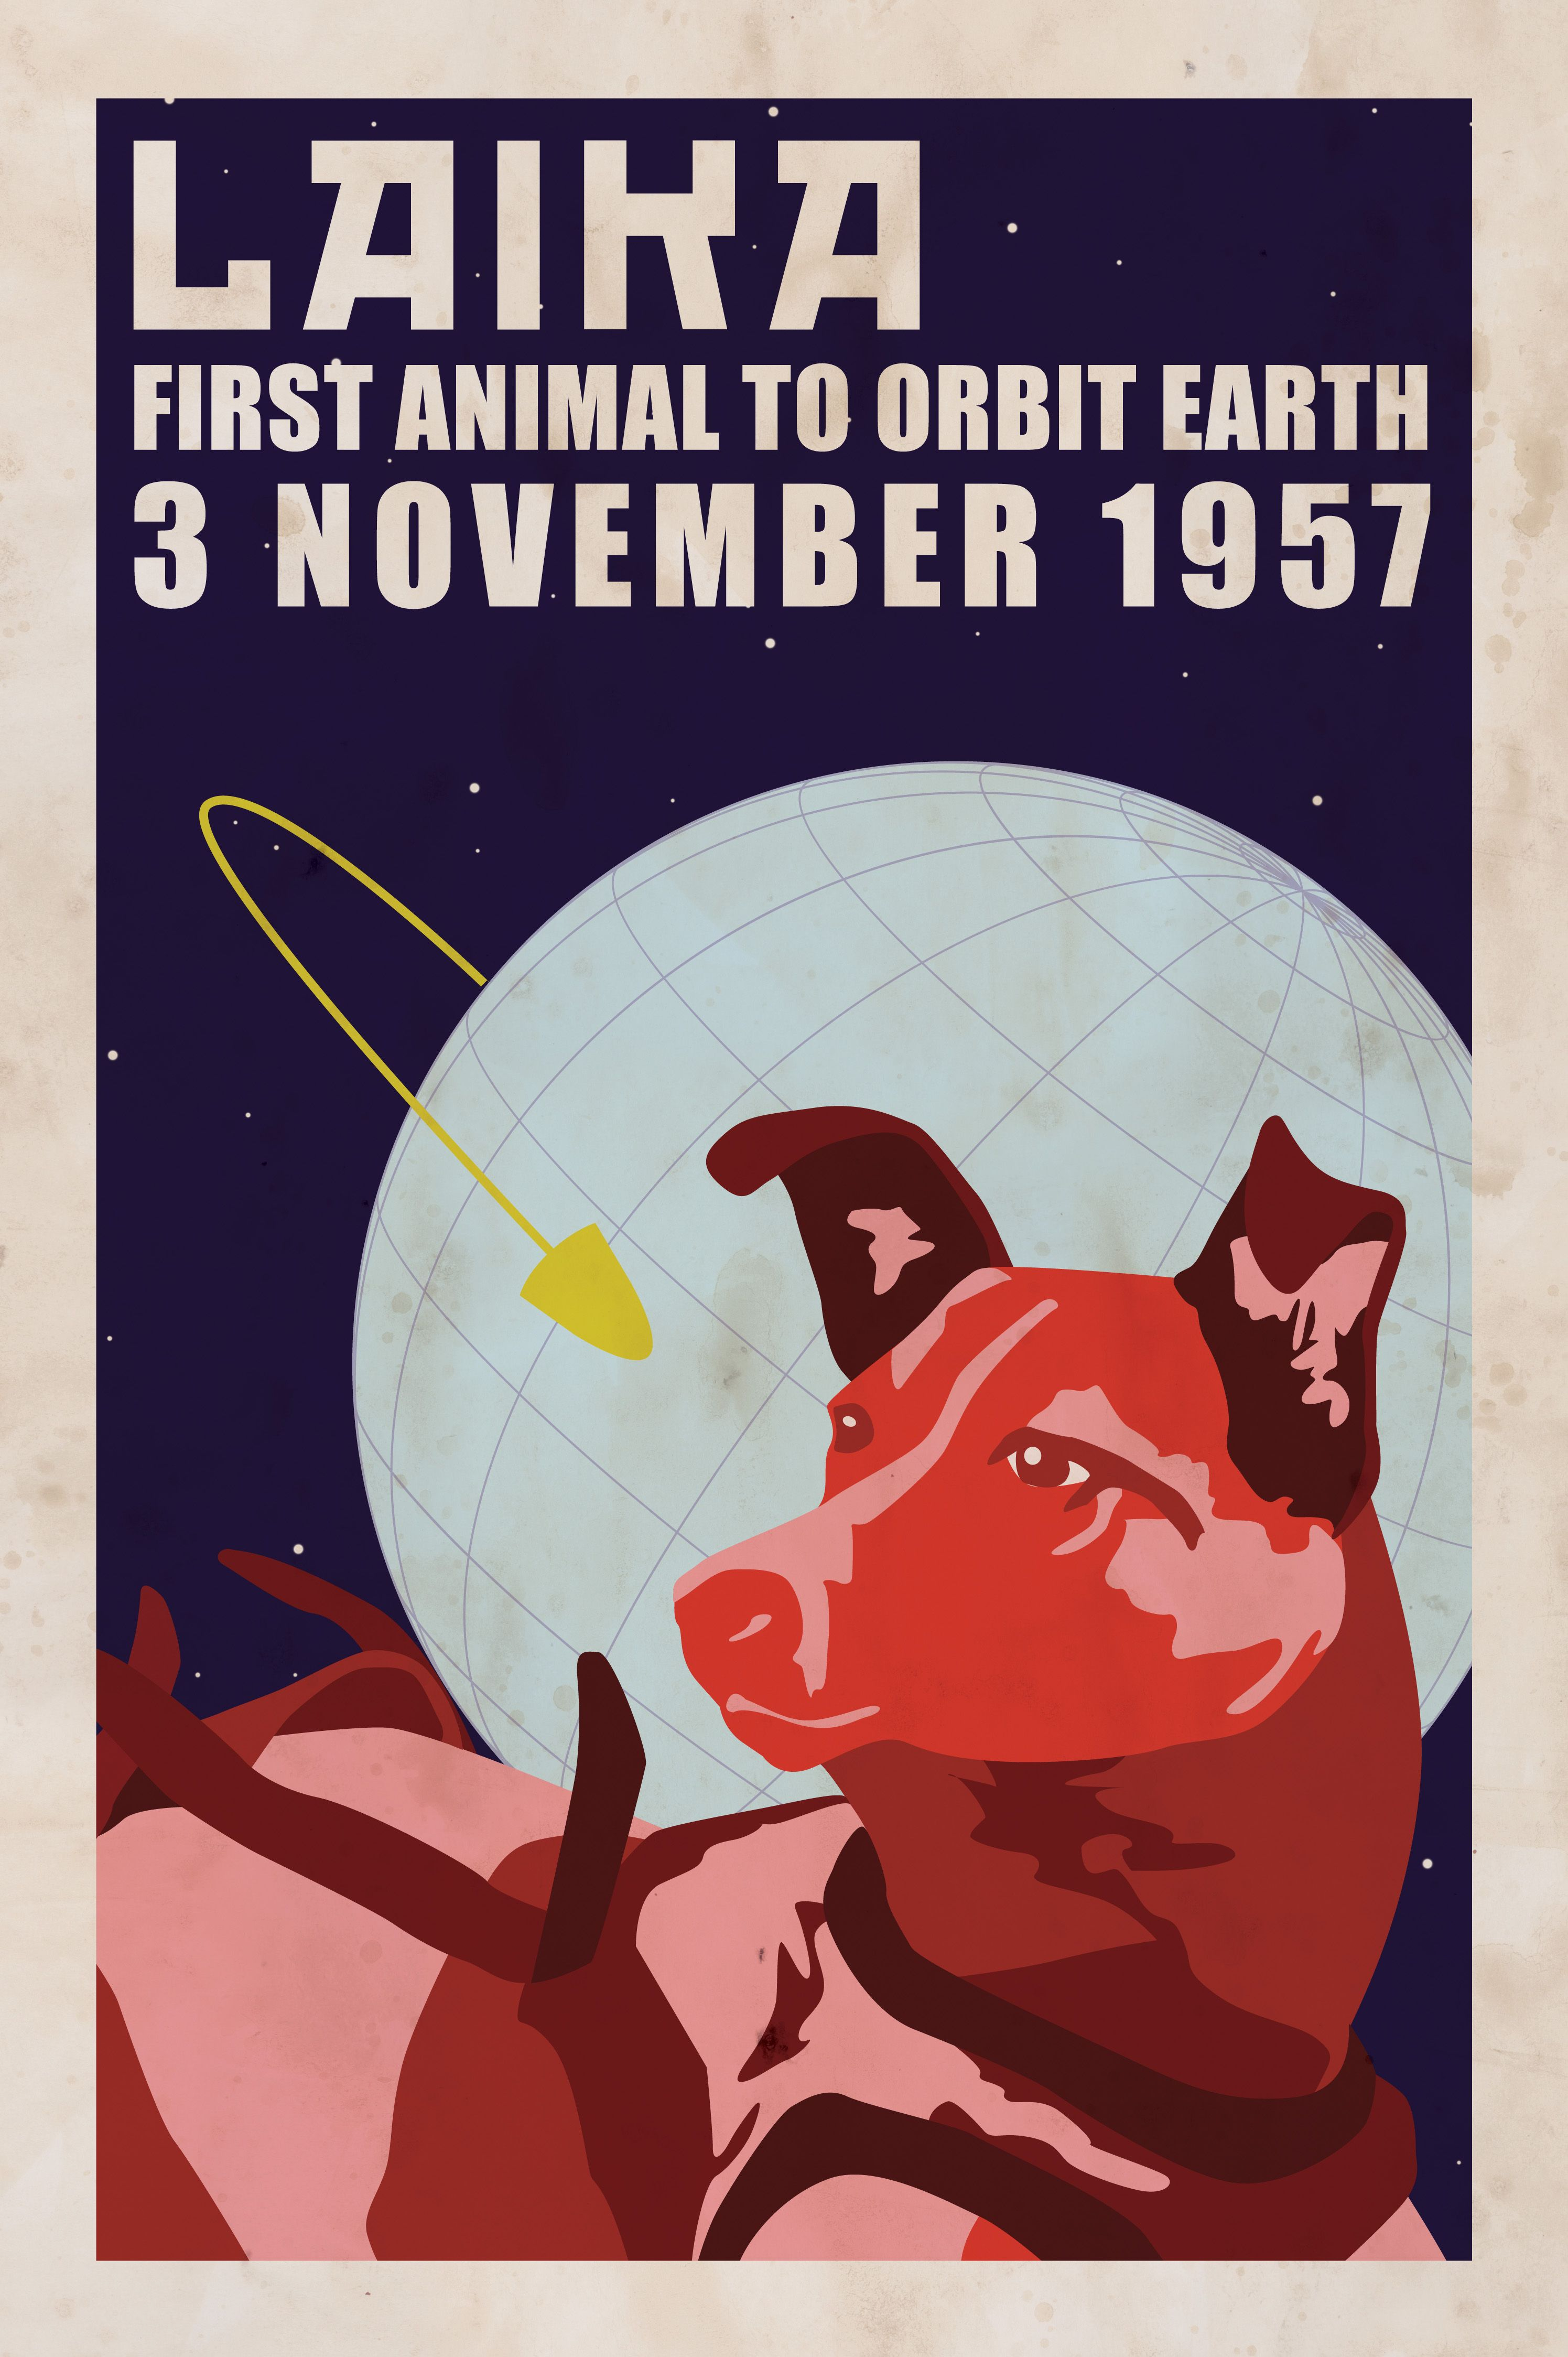 Can Vintage space poster